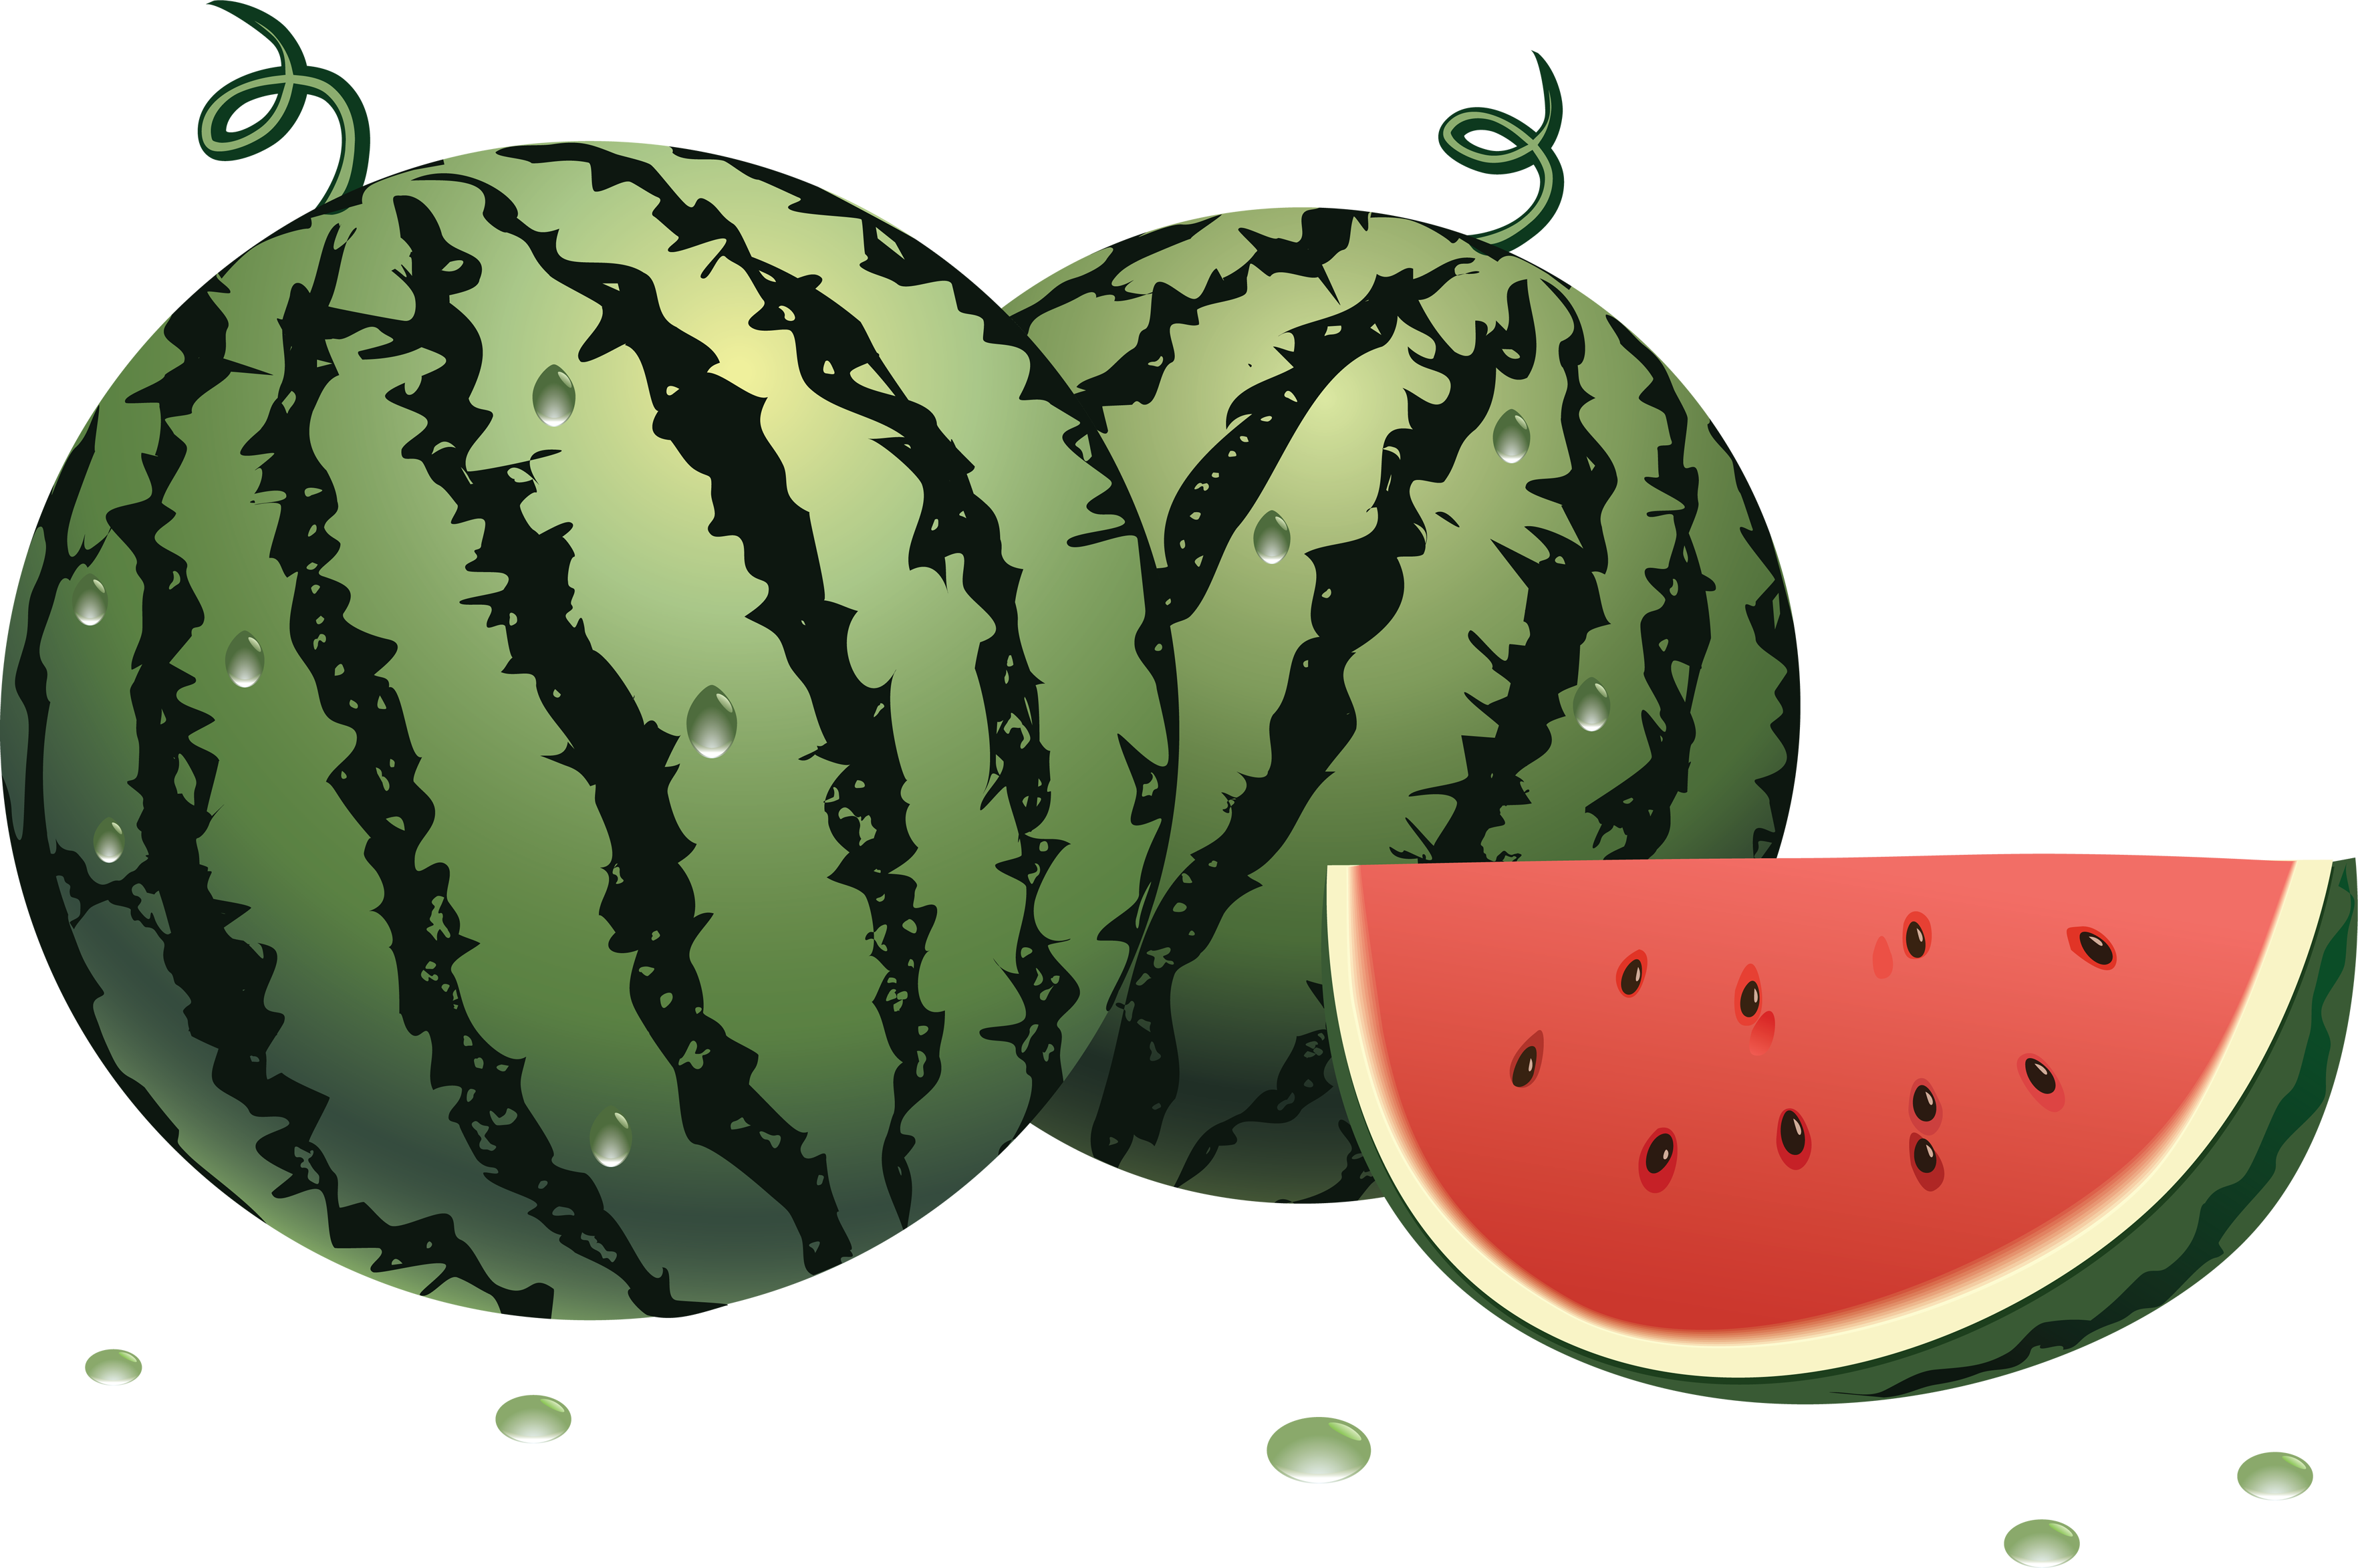 Png images free download. Berries clipart watermelon vine